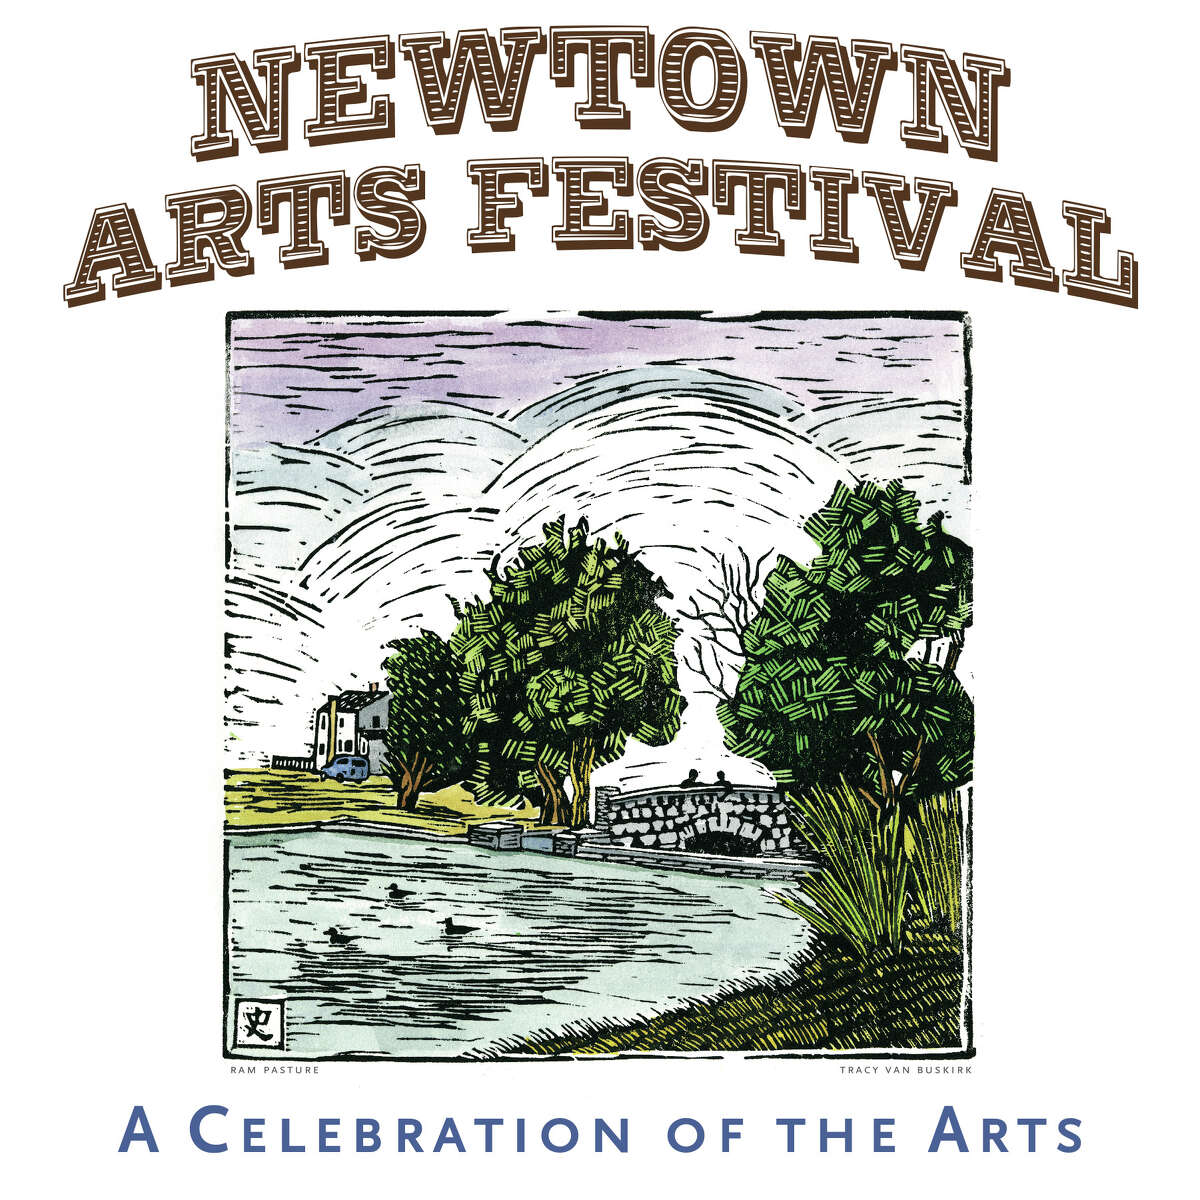 A contest was held to choose artwork for the 2012 Newtown Arts Festival poster. Here is the winning piece, created by Tracy Van Buskirk.